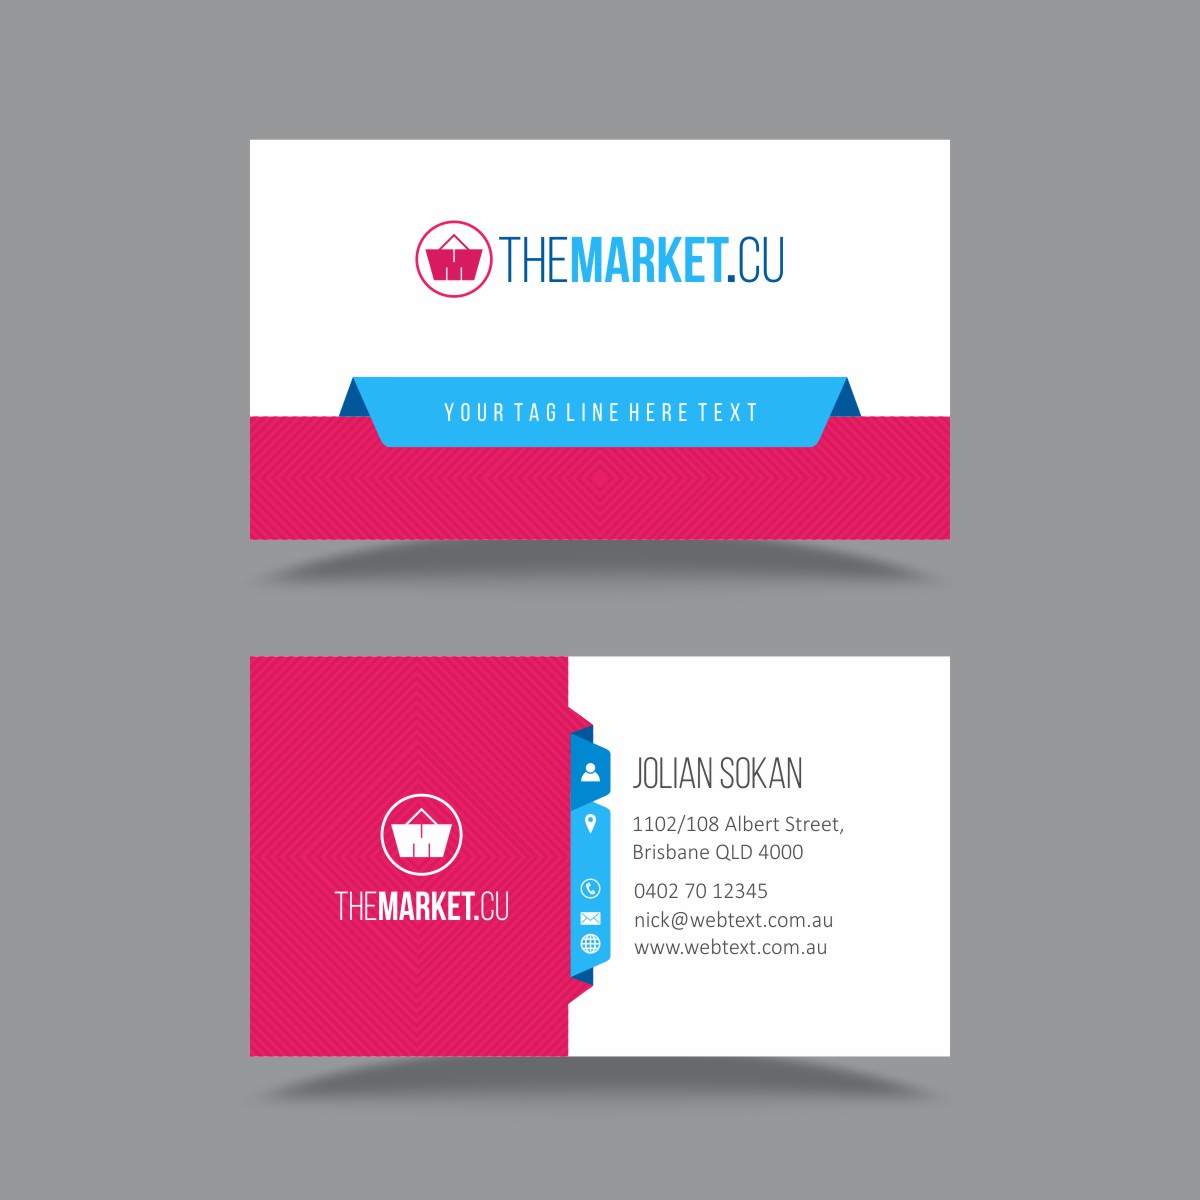 Ecommerce business card template online logo makers blog ecommerce business card template fbccfo Gallery